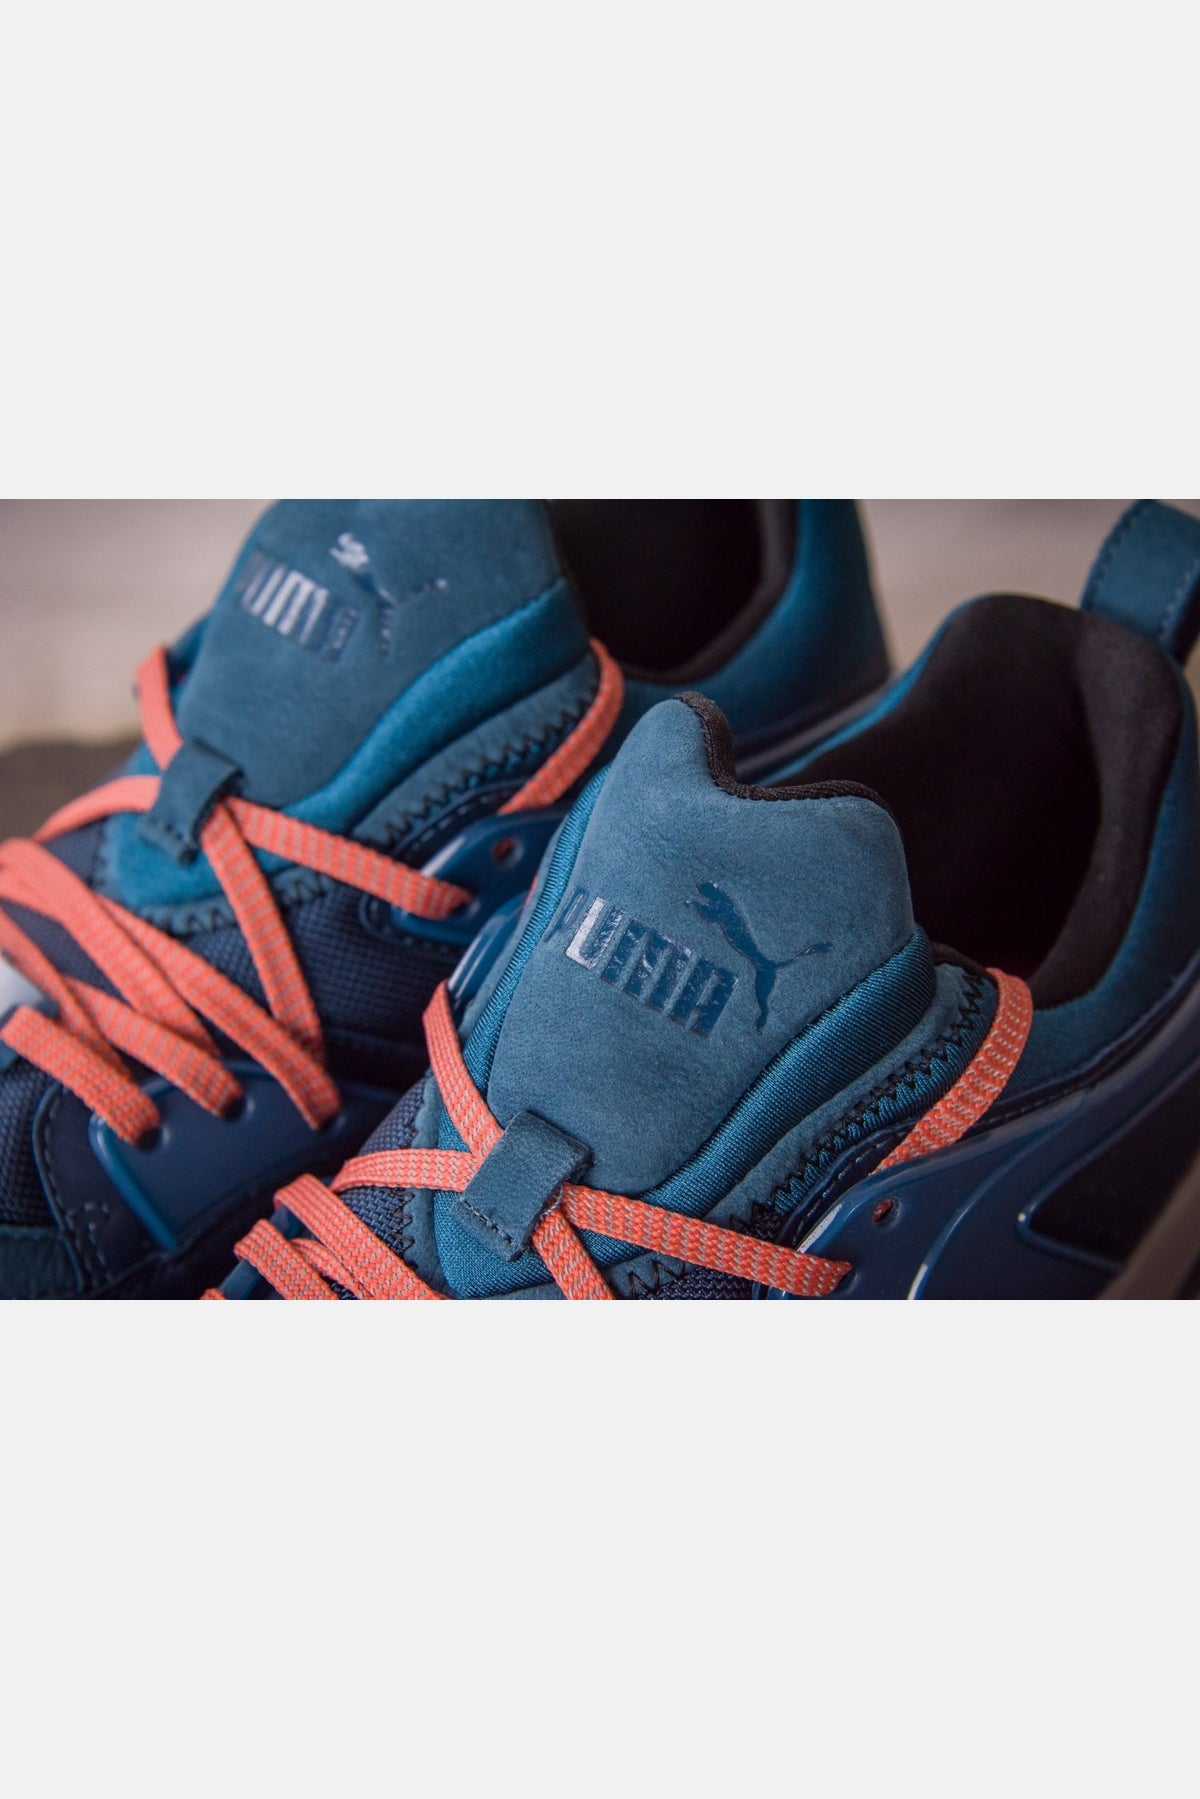 Puma Blaze Of Glory Shoes available from Priory af5125de4165